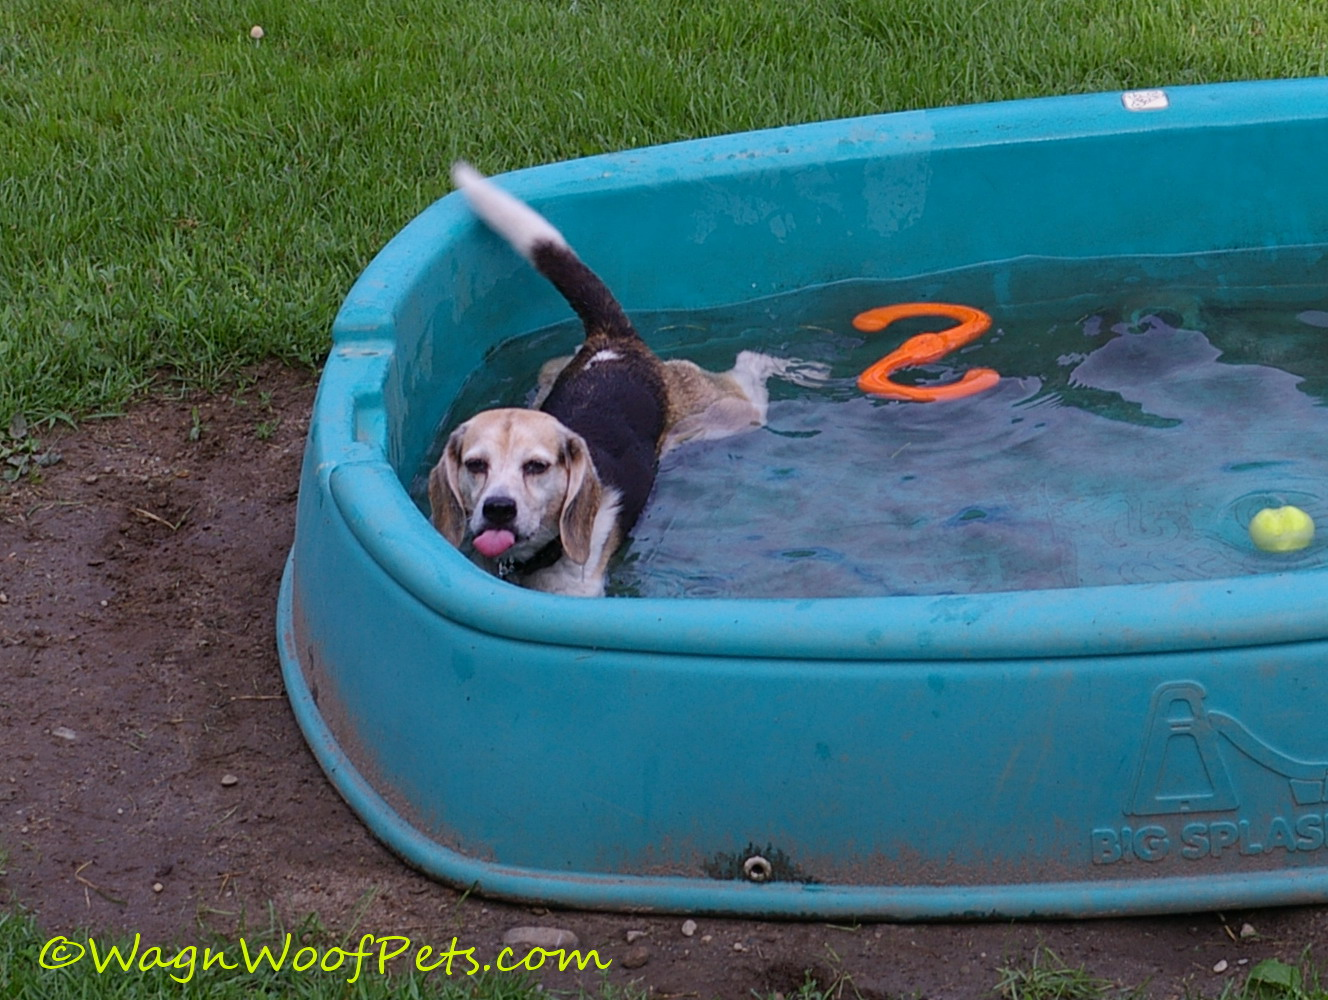 Cricket chooses the pool to cool off and get a drink!